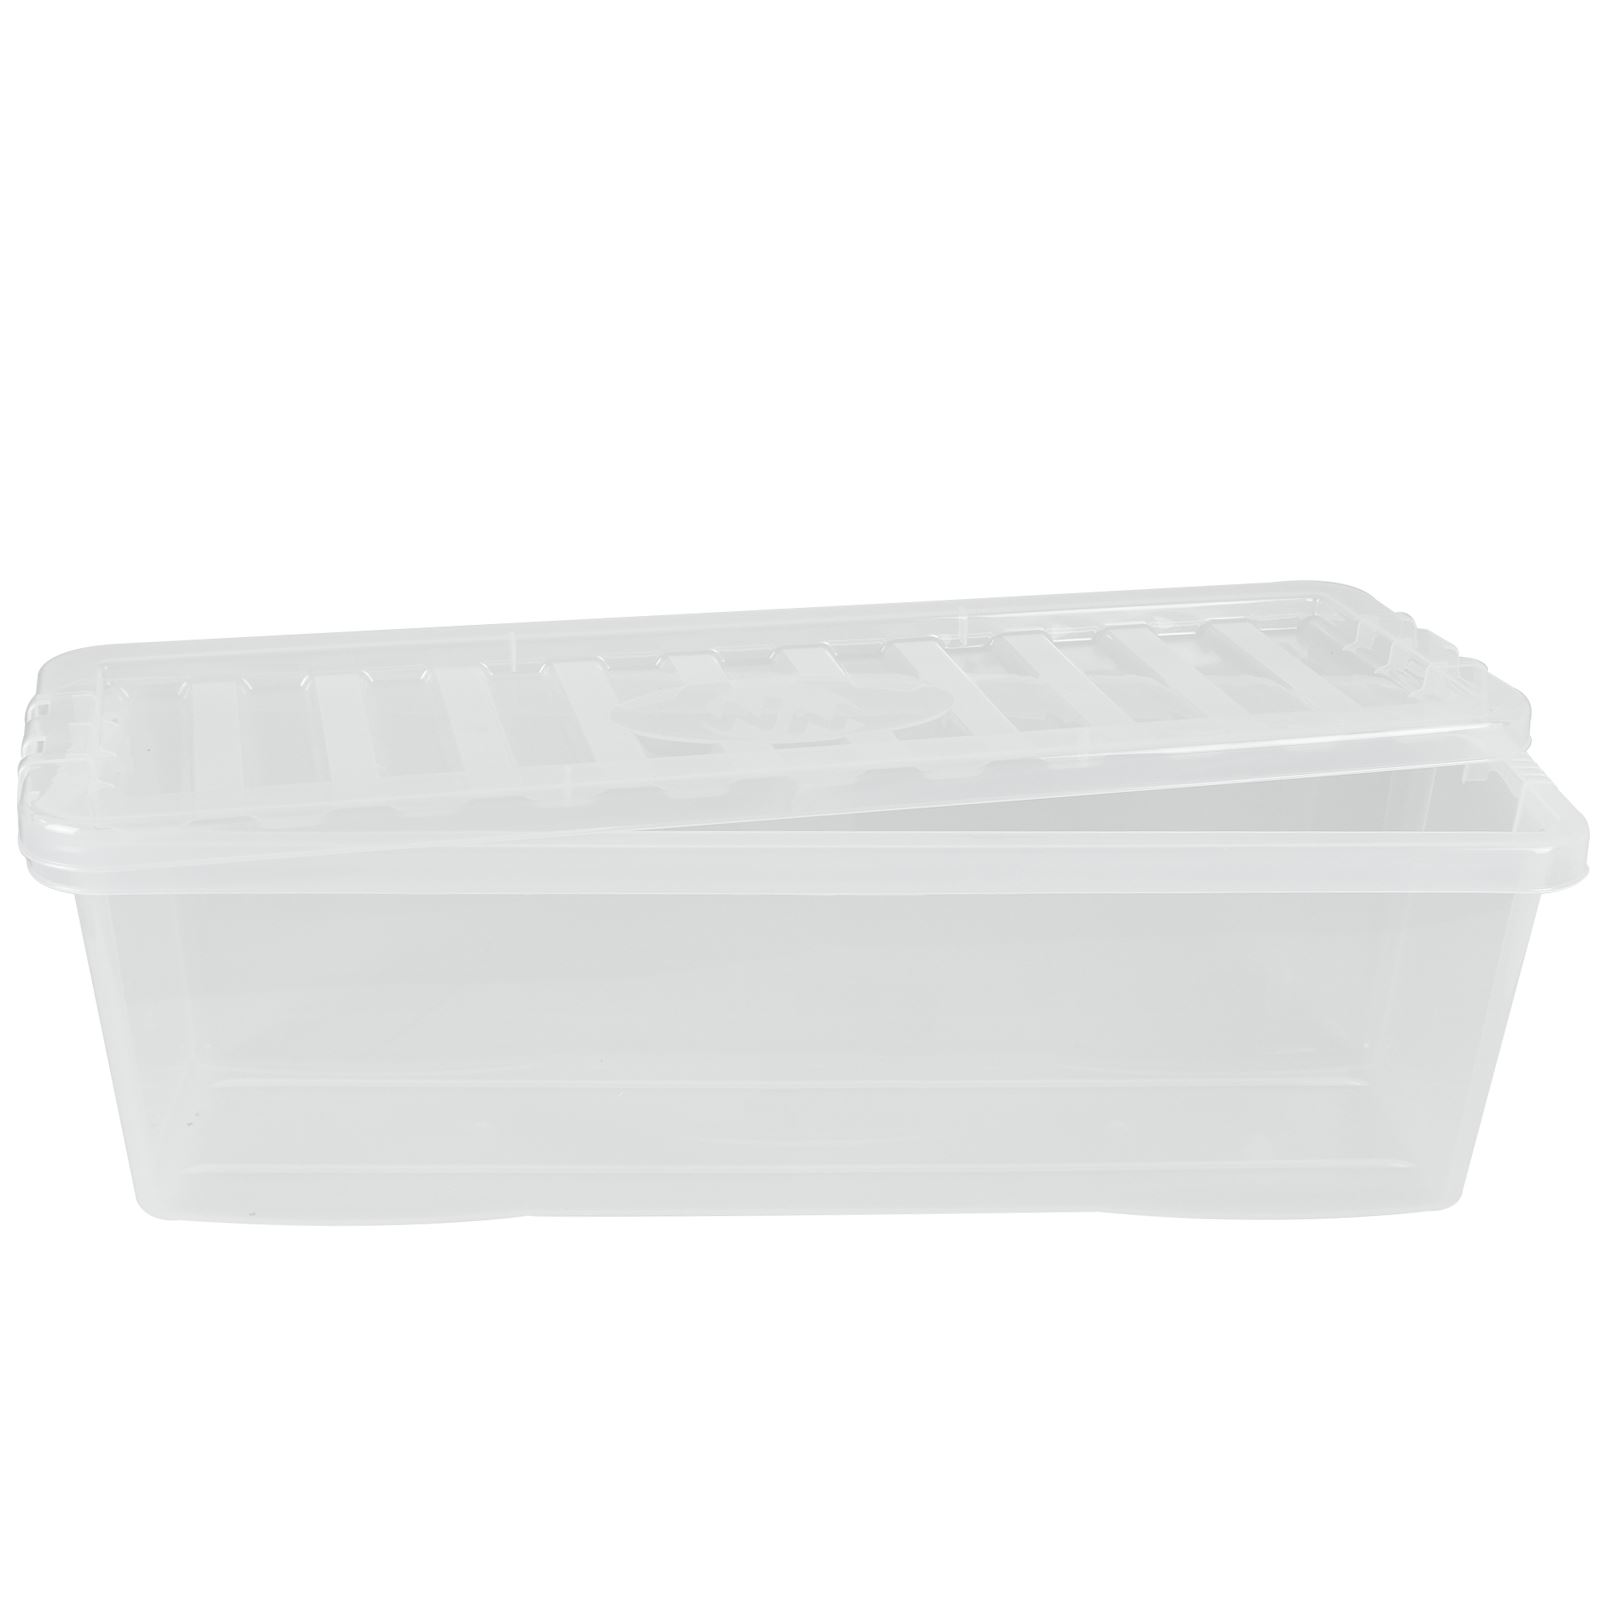 Wham-Crystal-Clear-Plastic-Storage-Box-Secure-Clip-on-Lid-Under-Bed-Space-Save thumbnail 4